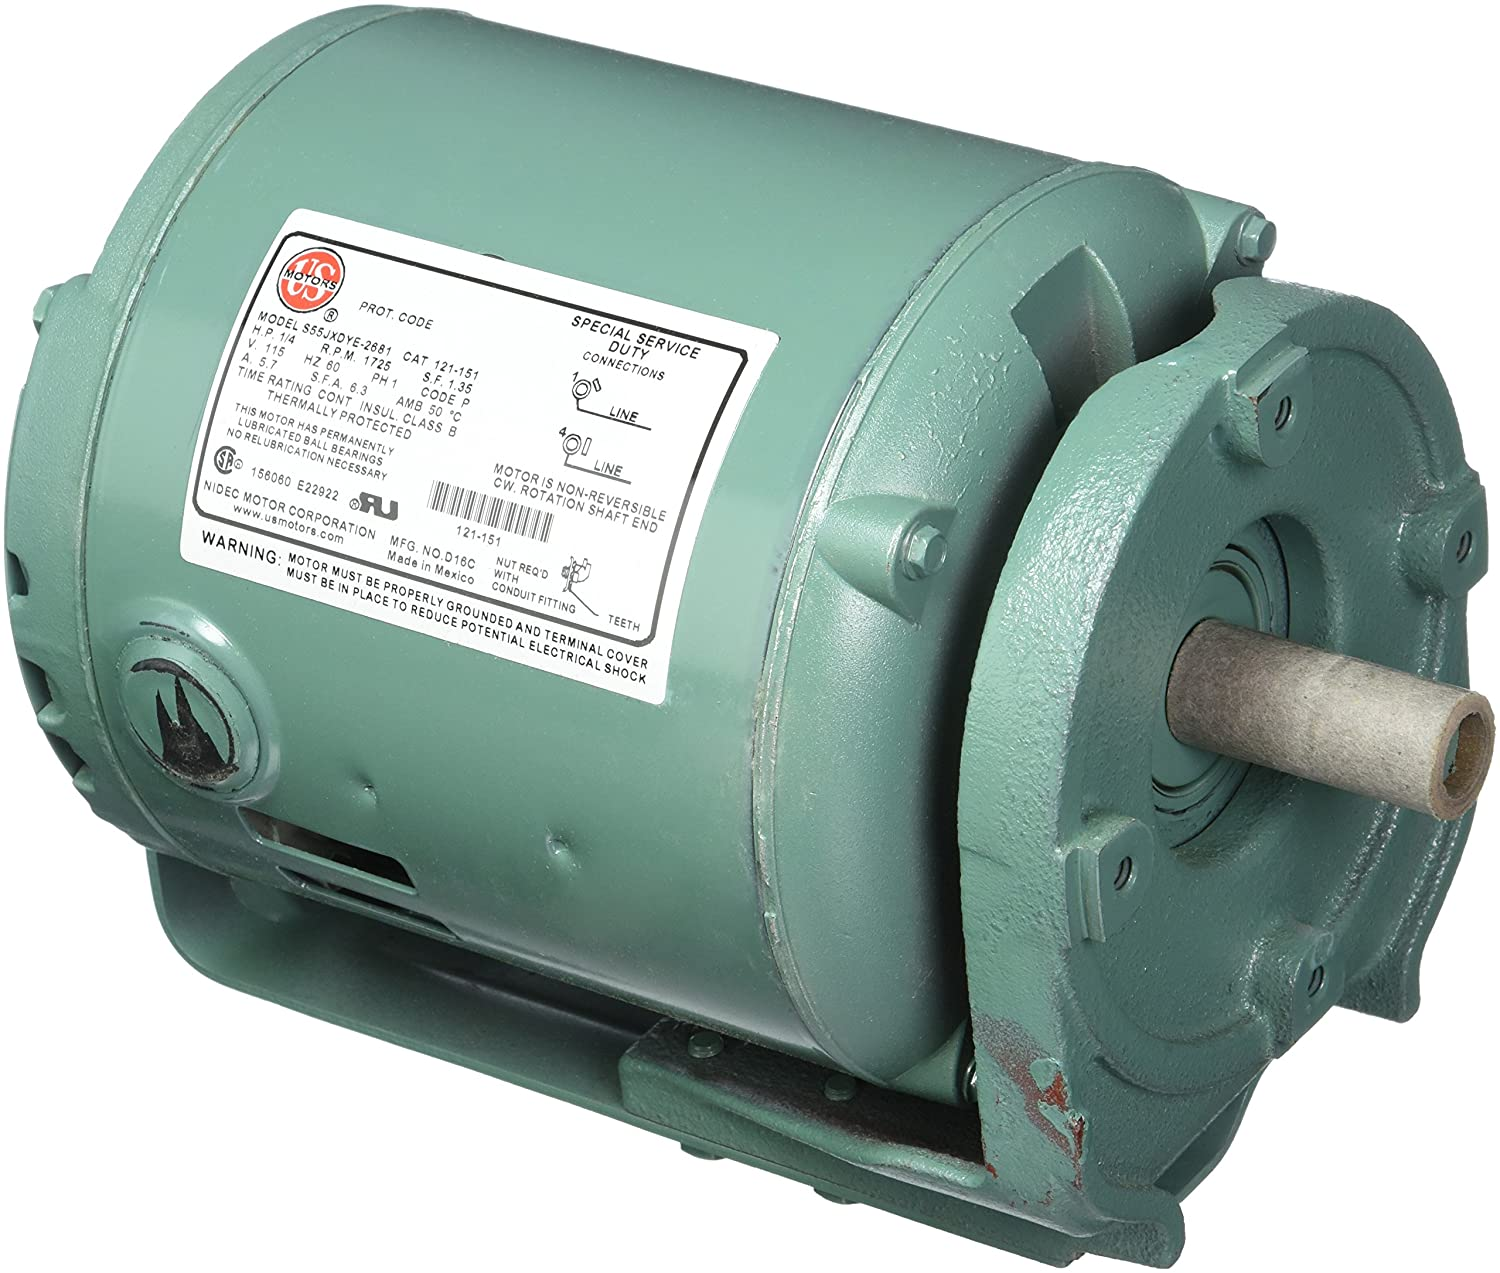 Taco 121-151RP Replacement Motor Assembly, 1/4 HP, 115-Volt ...